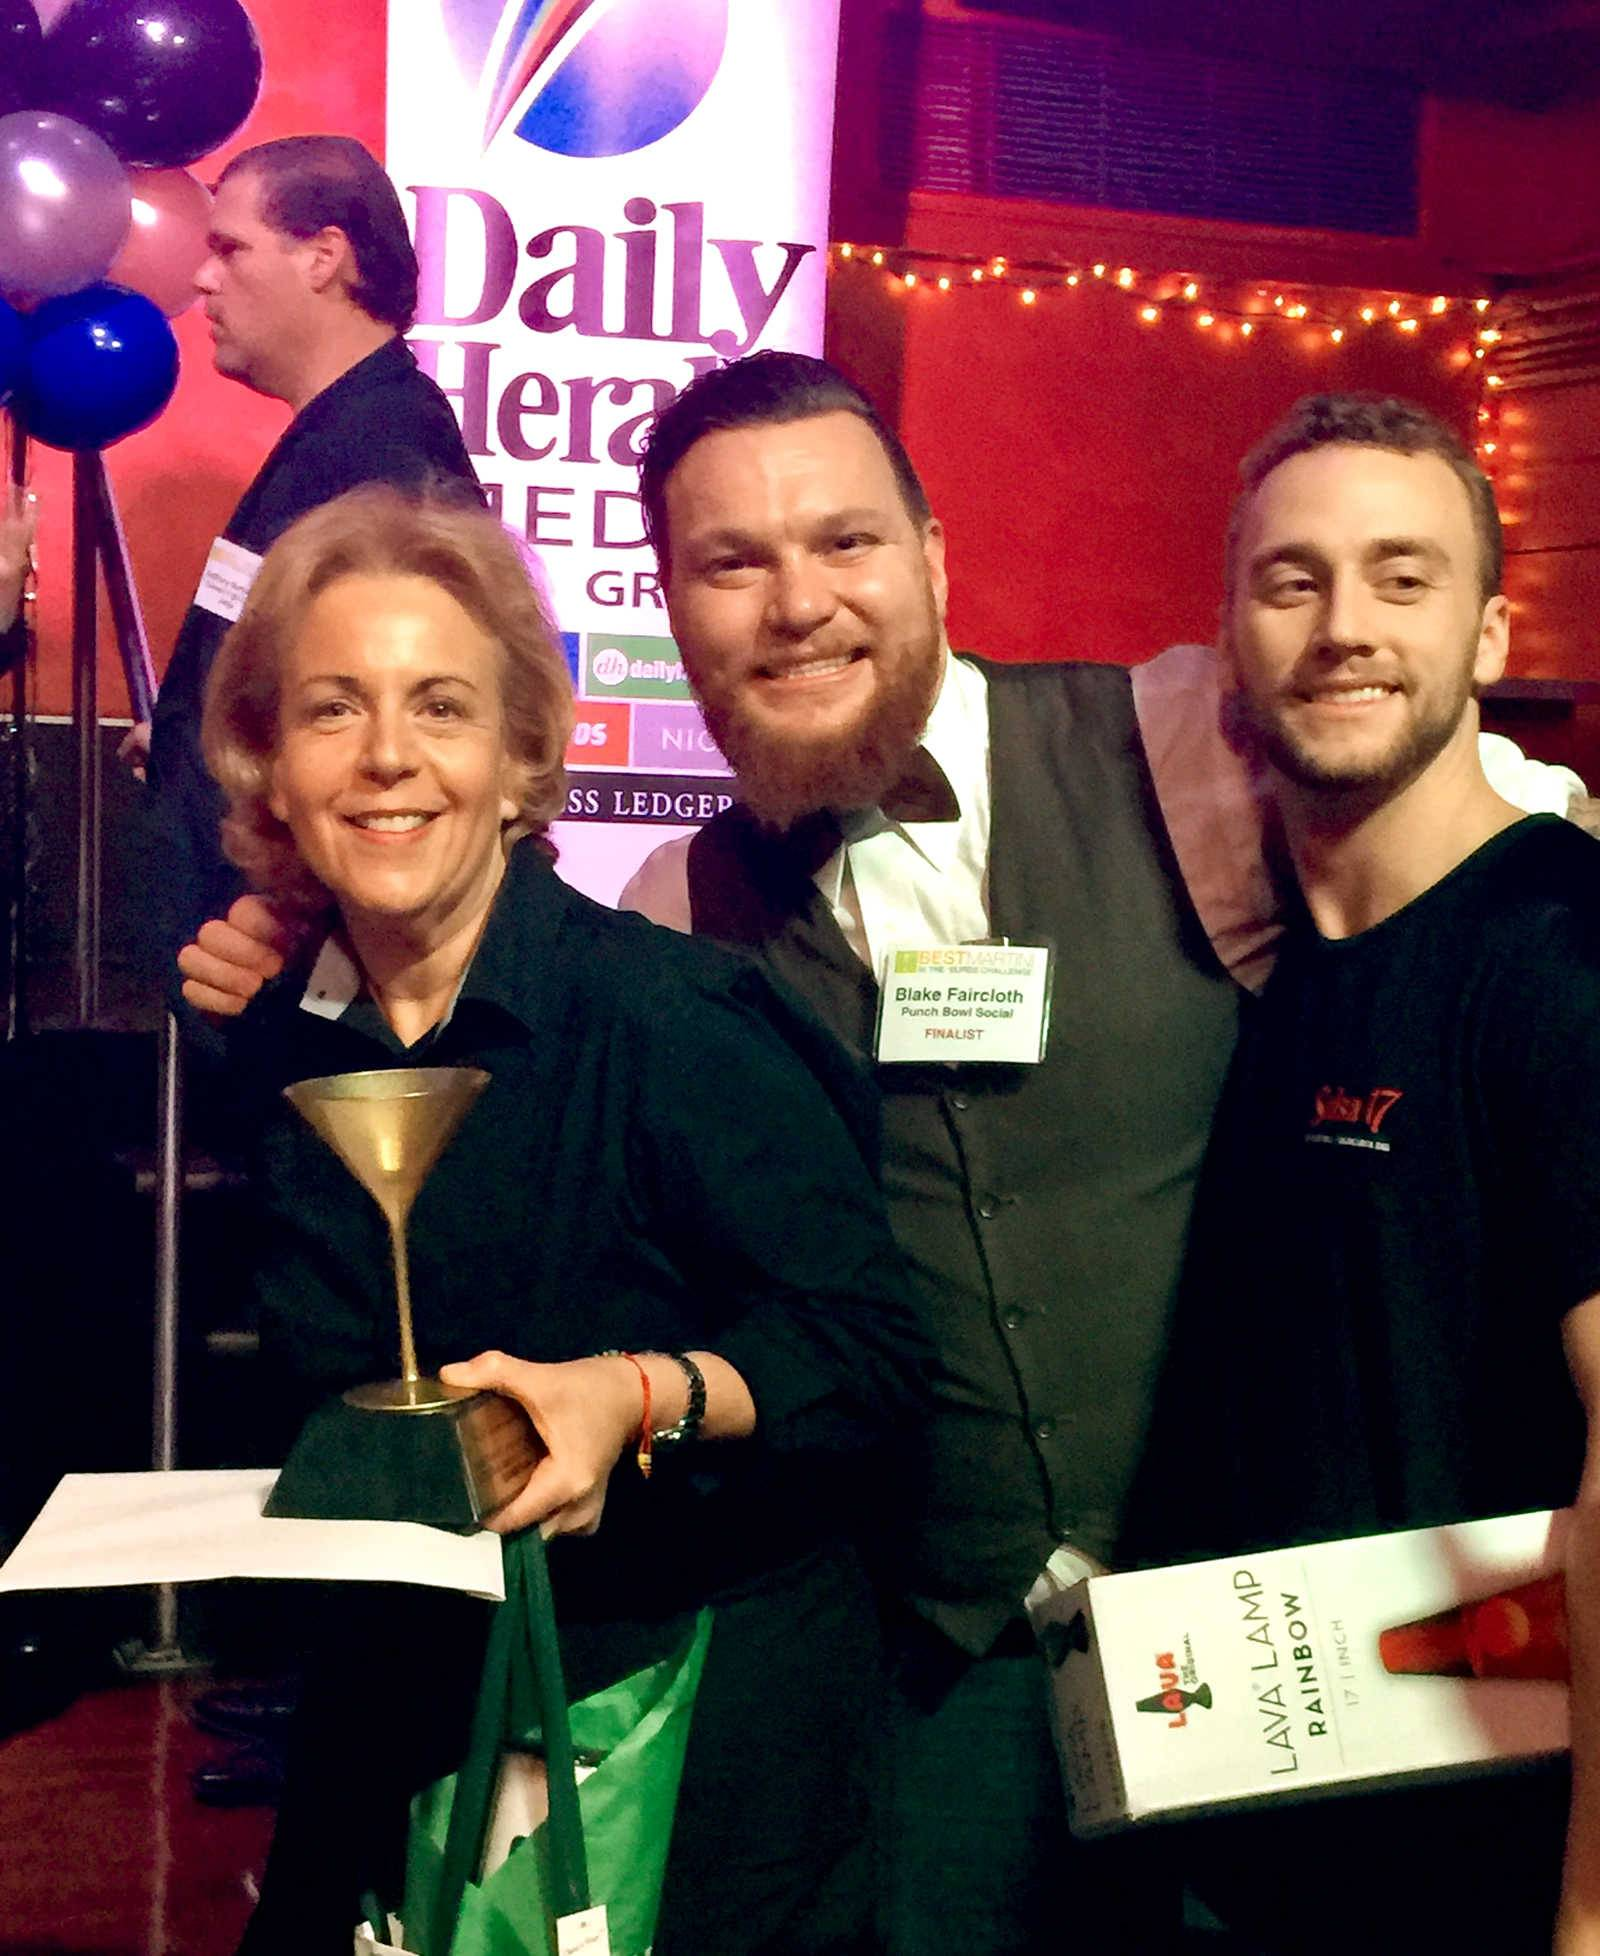 The judges' favorites for the Daily Herald's Best Martini in the 'Burbs contest are, from left: first place, Gail Fardman of JL's Pizza and Sports in Palatine; second place, Blake Faircloth of Punch Bowl Social in Schaumburg; and third place, Max Huber of Salsa 17 in Arlington Heights.